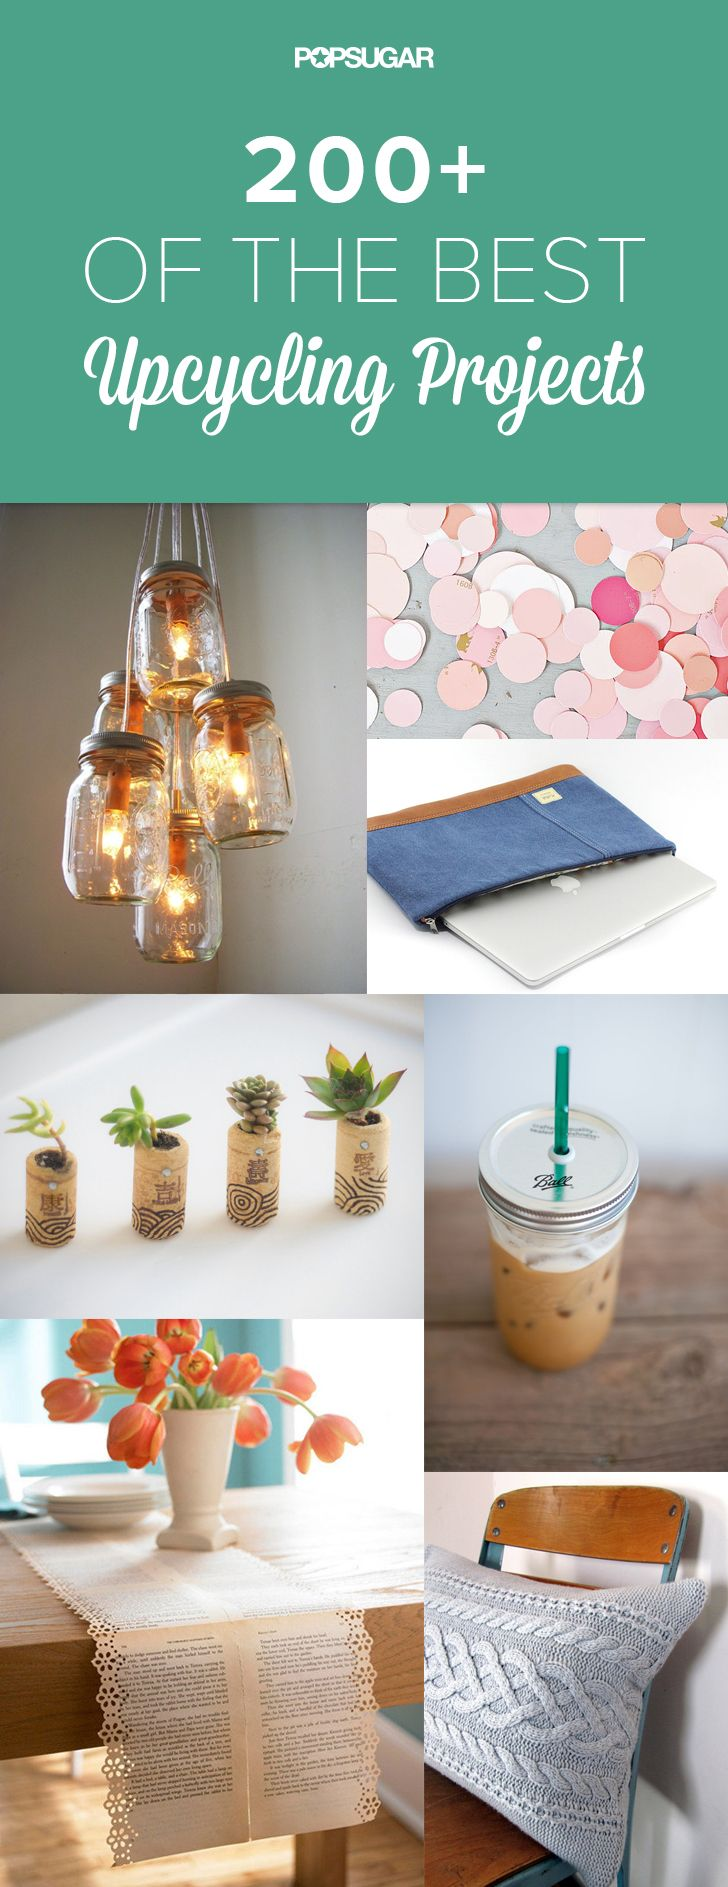 OMIGOSH. We have to try these out. So adorable and who knew?! Look at these 200 upcycling ideas that will blow your mind! #FYI #UpcycleIt #Mindblown